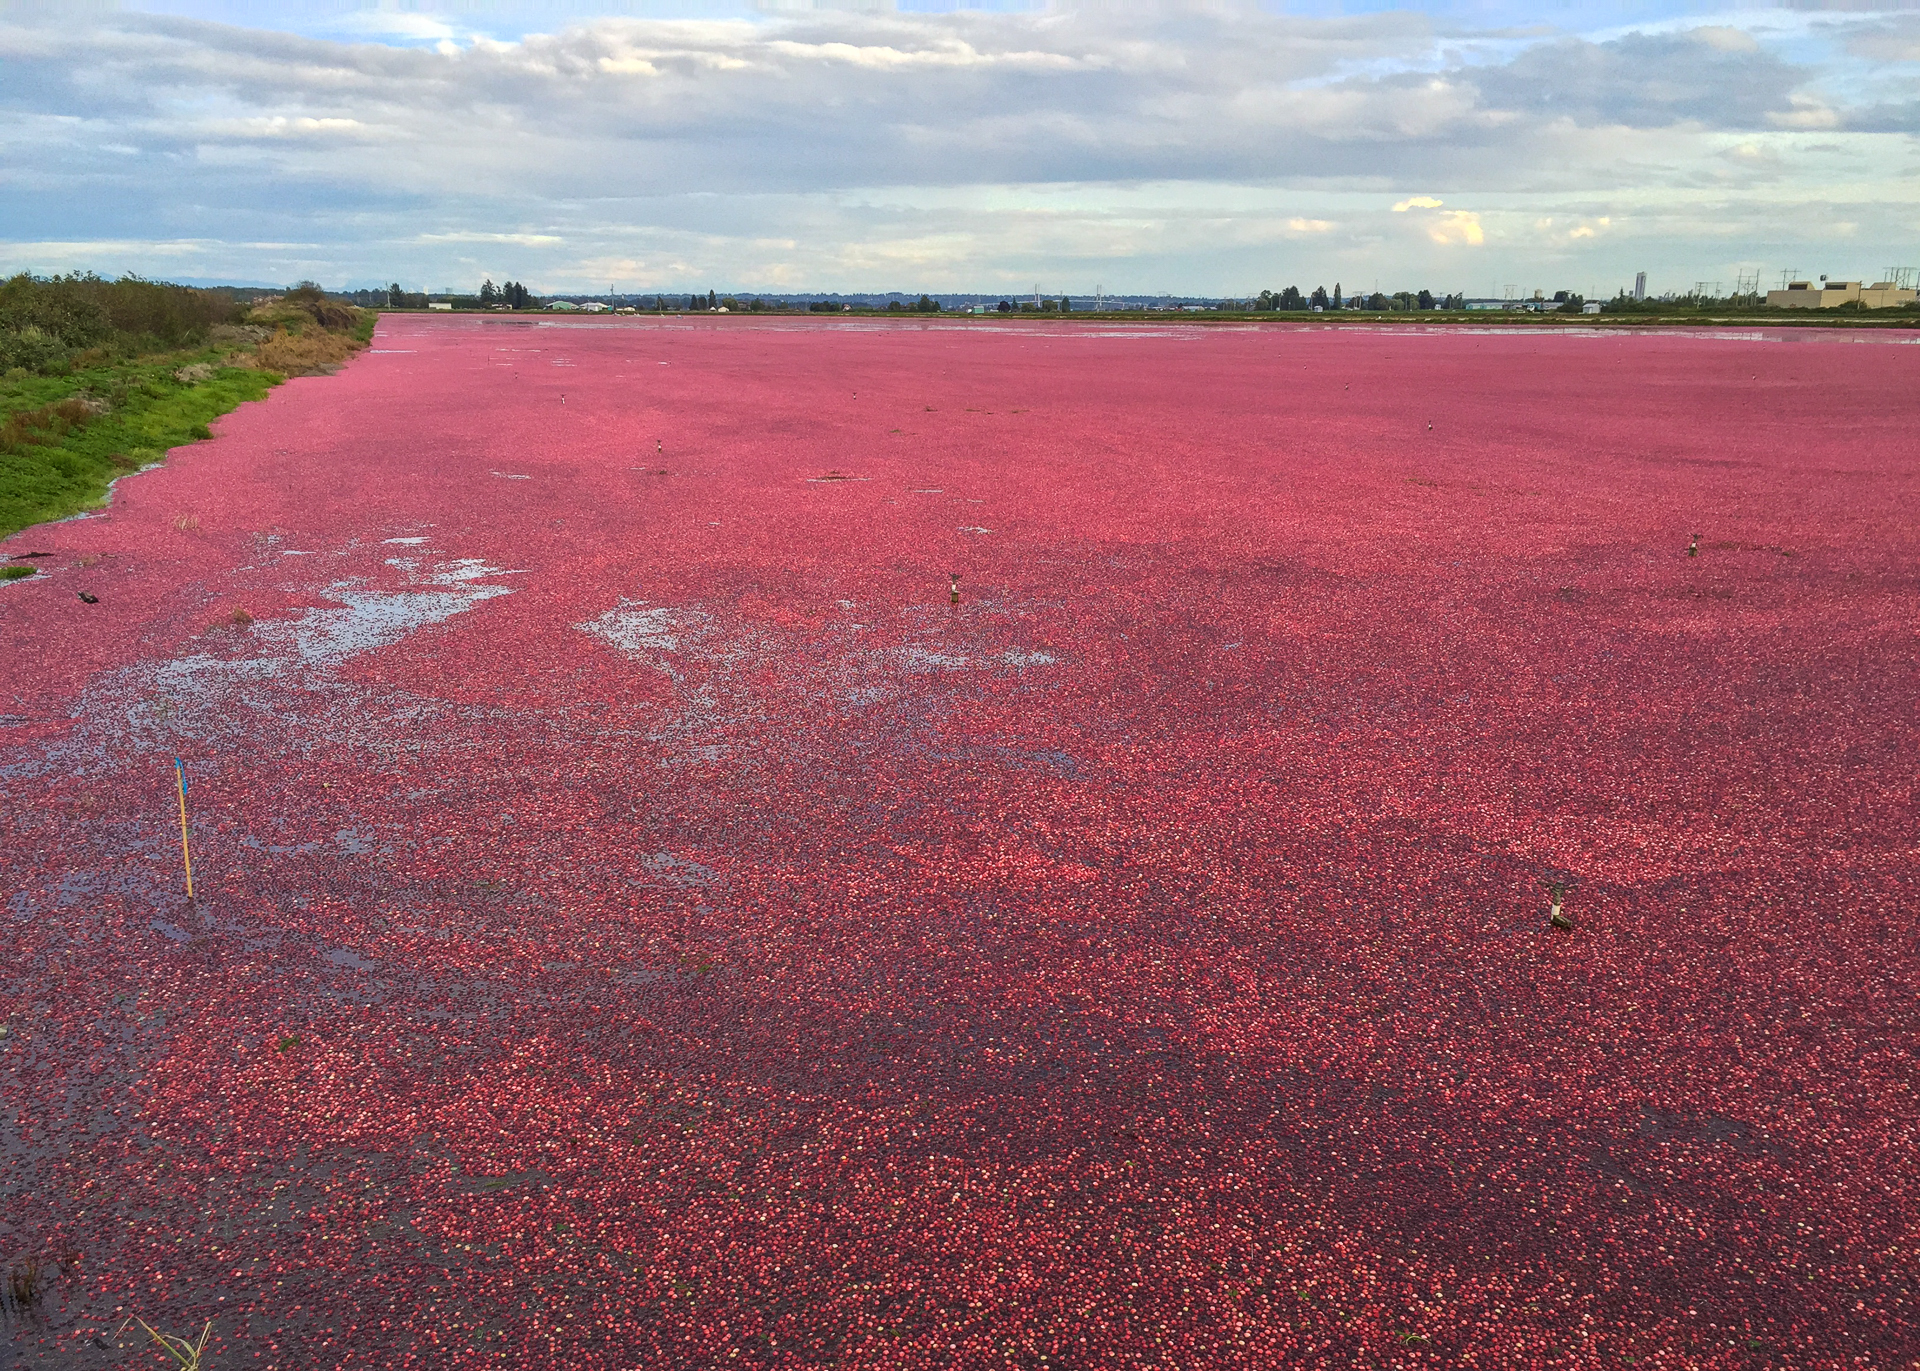 As you may or may not know, they grow a lot of cranberries around Vancouver. I was riding home from work the other week, and noticed that they were harvesting cranberries in one of the local fields. It's pretty interesting - they flood the field, the berries float and then they harvest them.